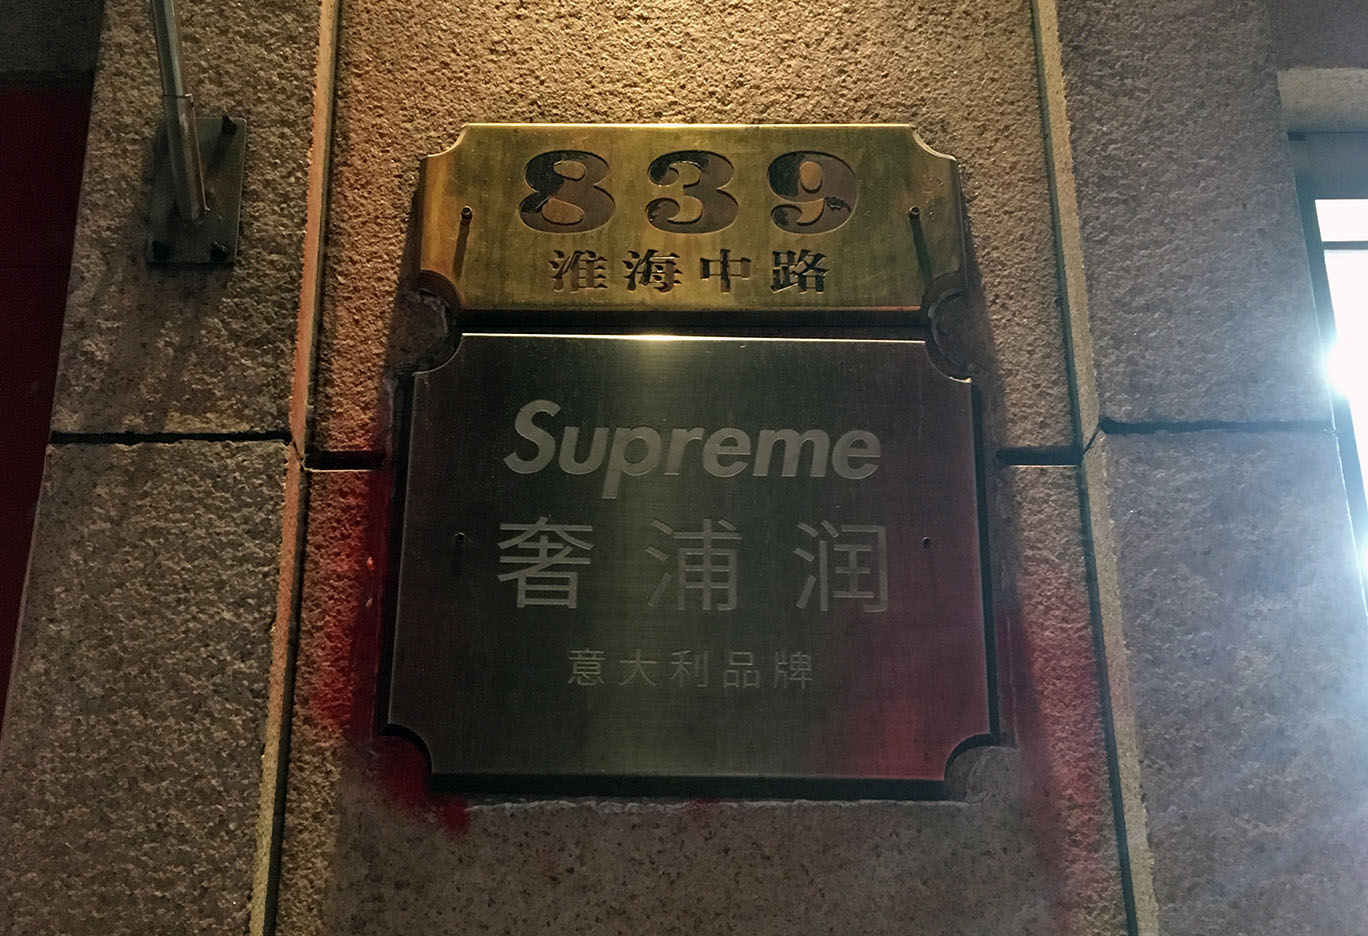 A bronze plate of SUPREME brand along with its Chinese name. Last line states it is an Italian brand.